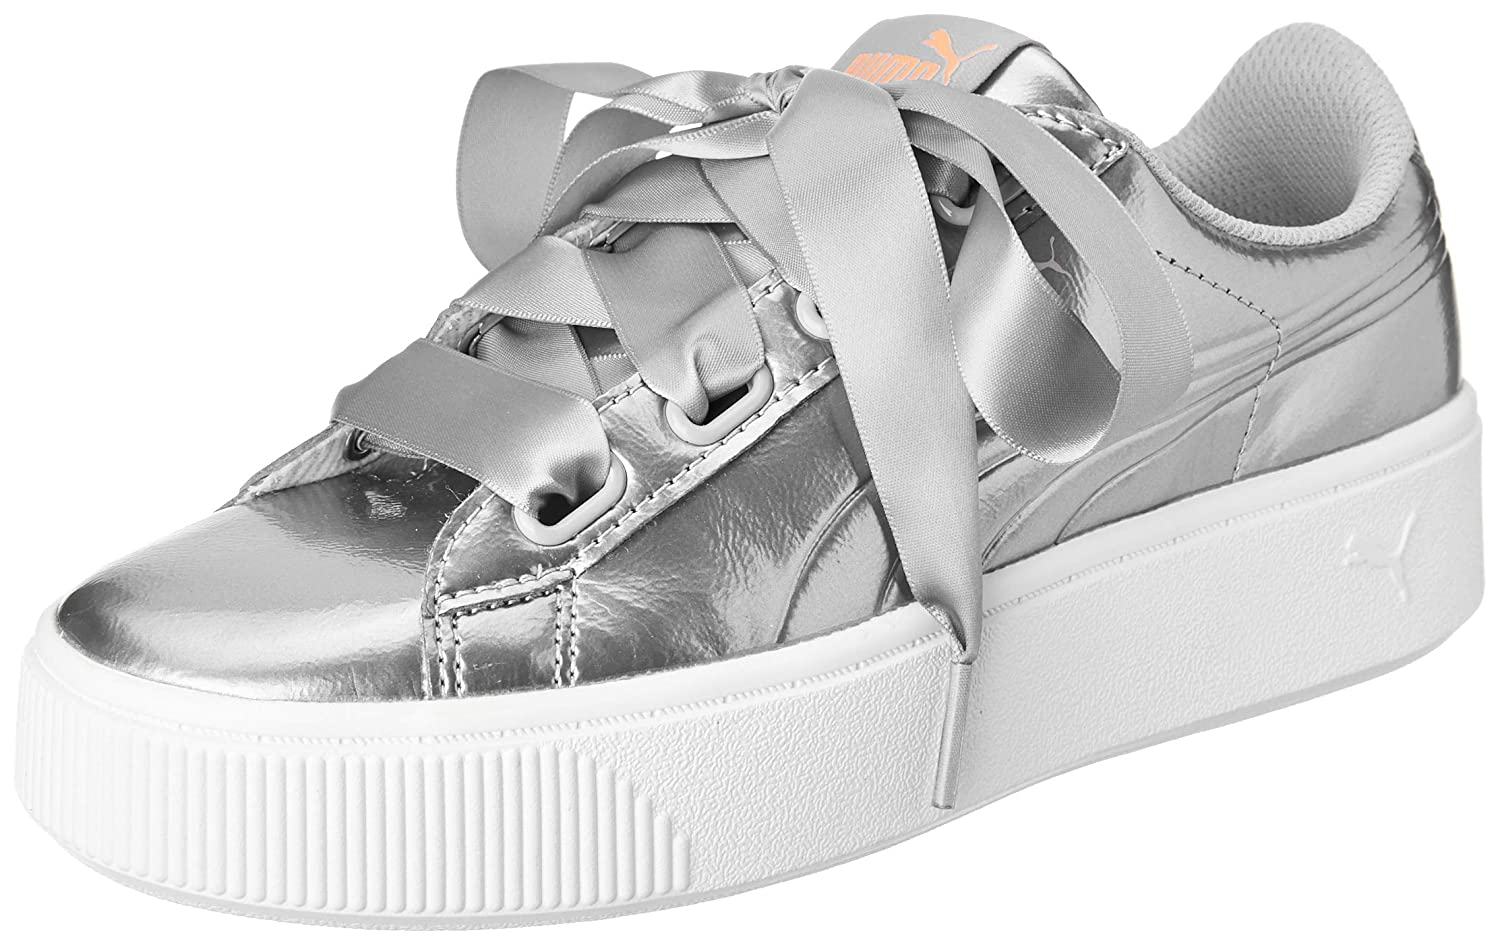 a63bfbfb744 Puma Women s Vikky Stacked Ribbon P Sneakers  Buy Online at Low Prices in  India - Amazon.in